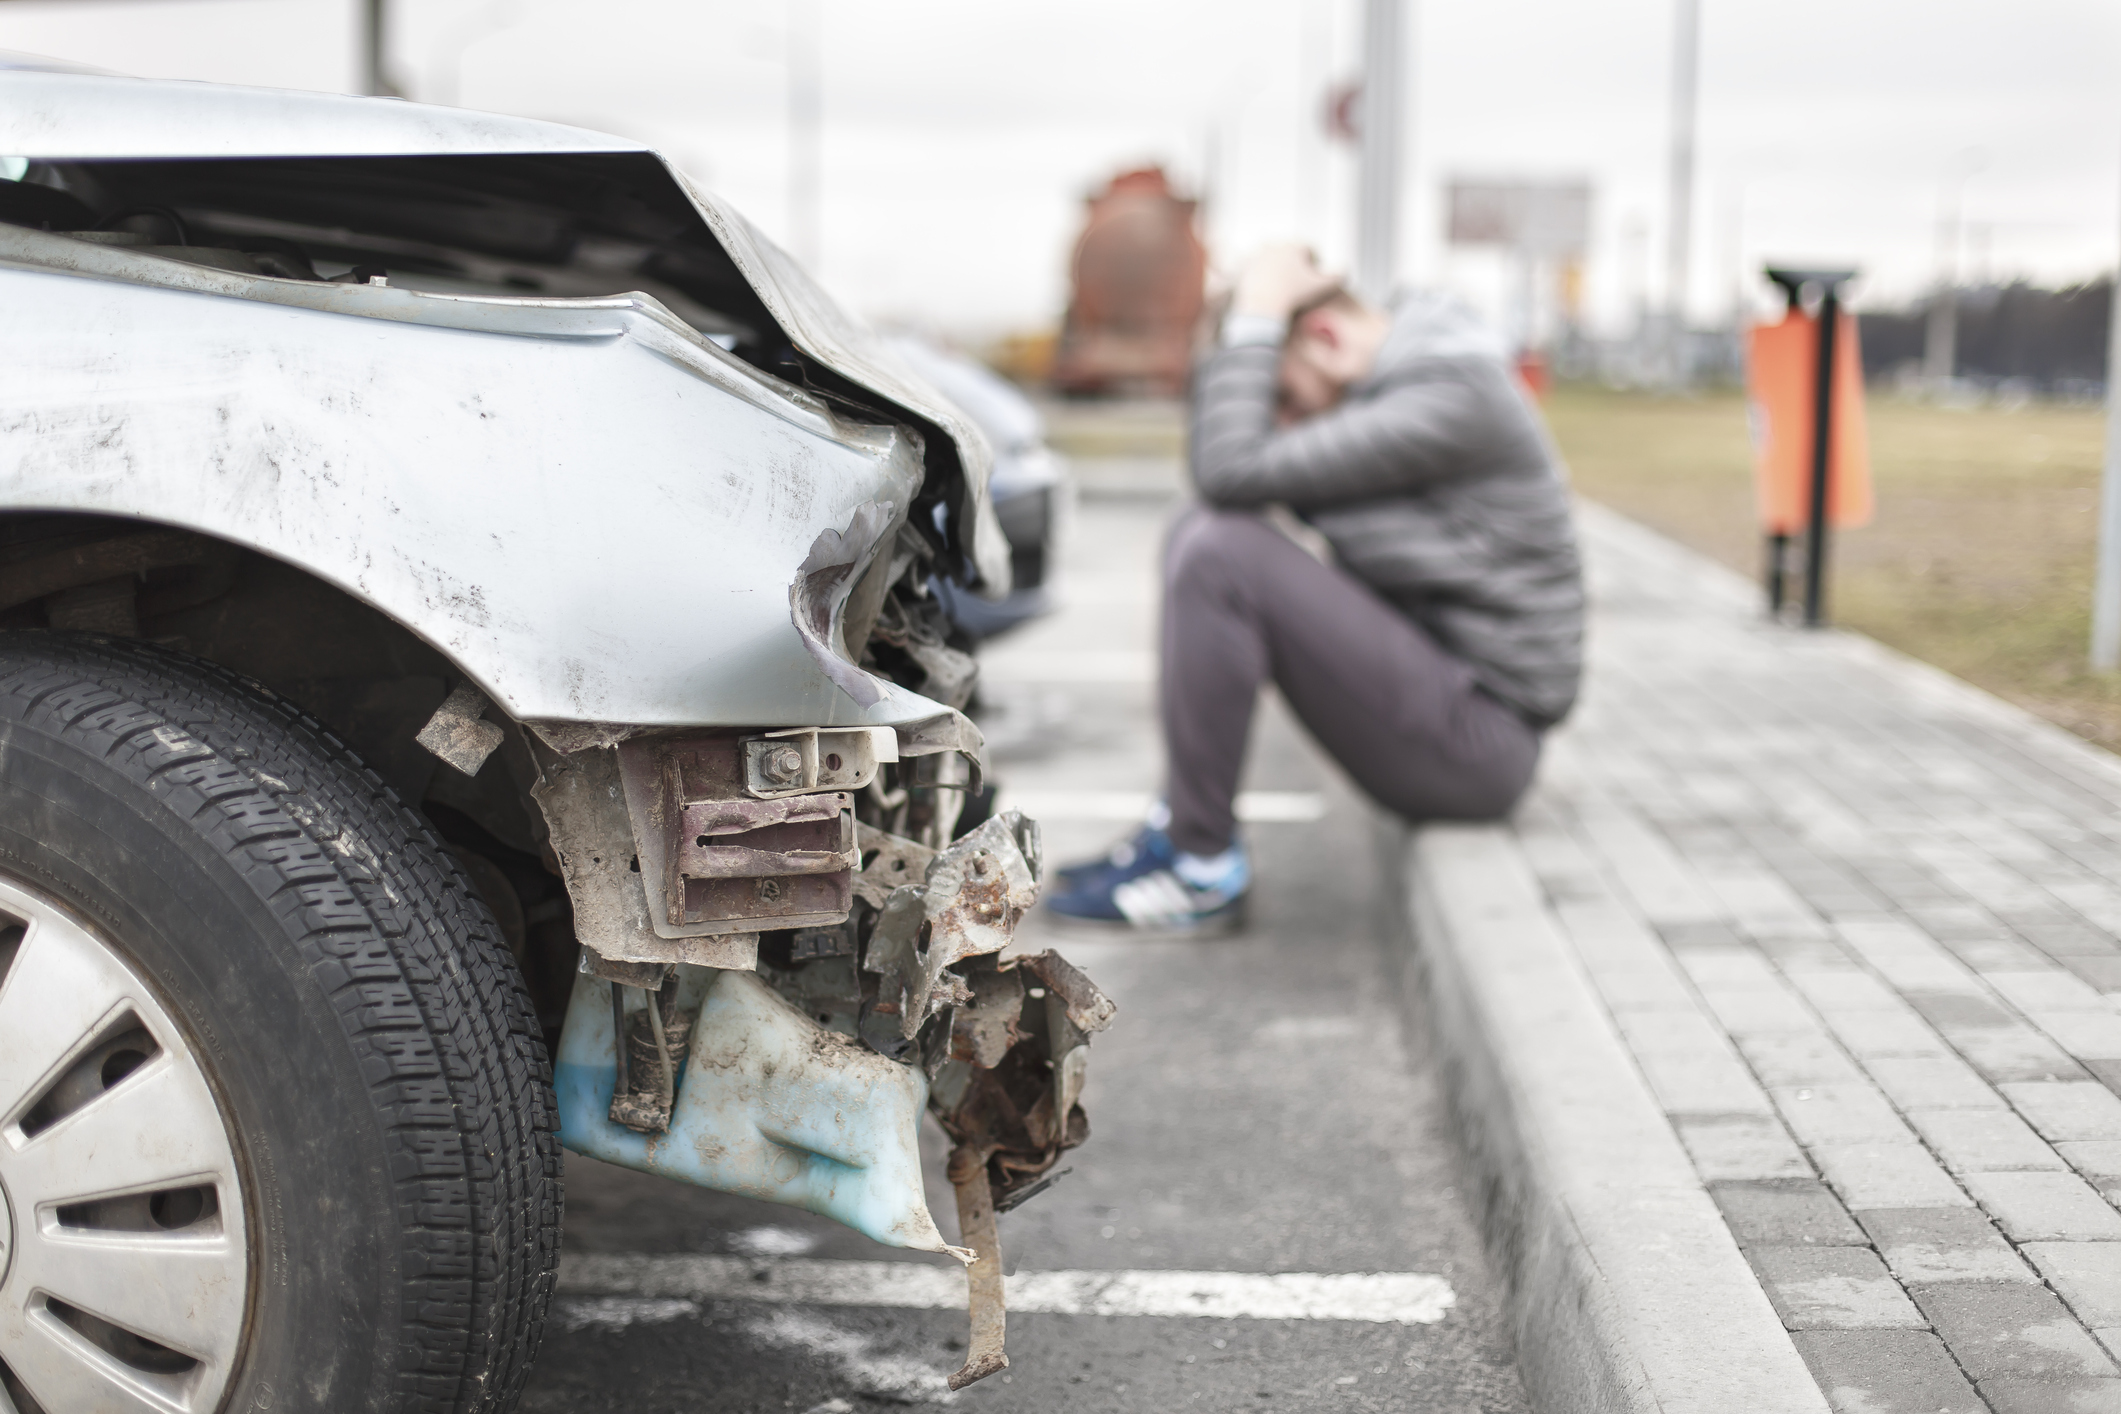 Woman in car accident with whiplash